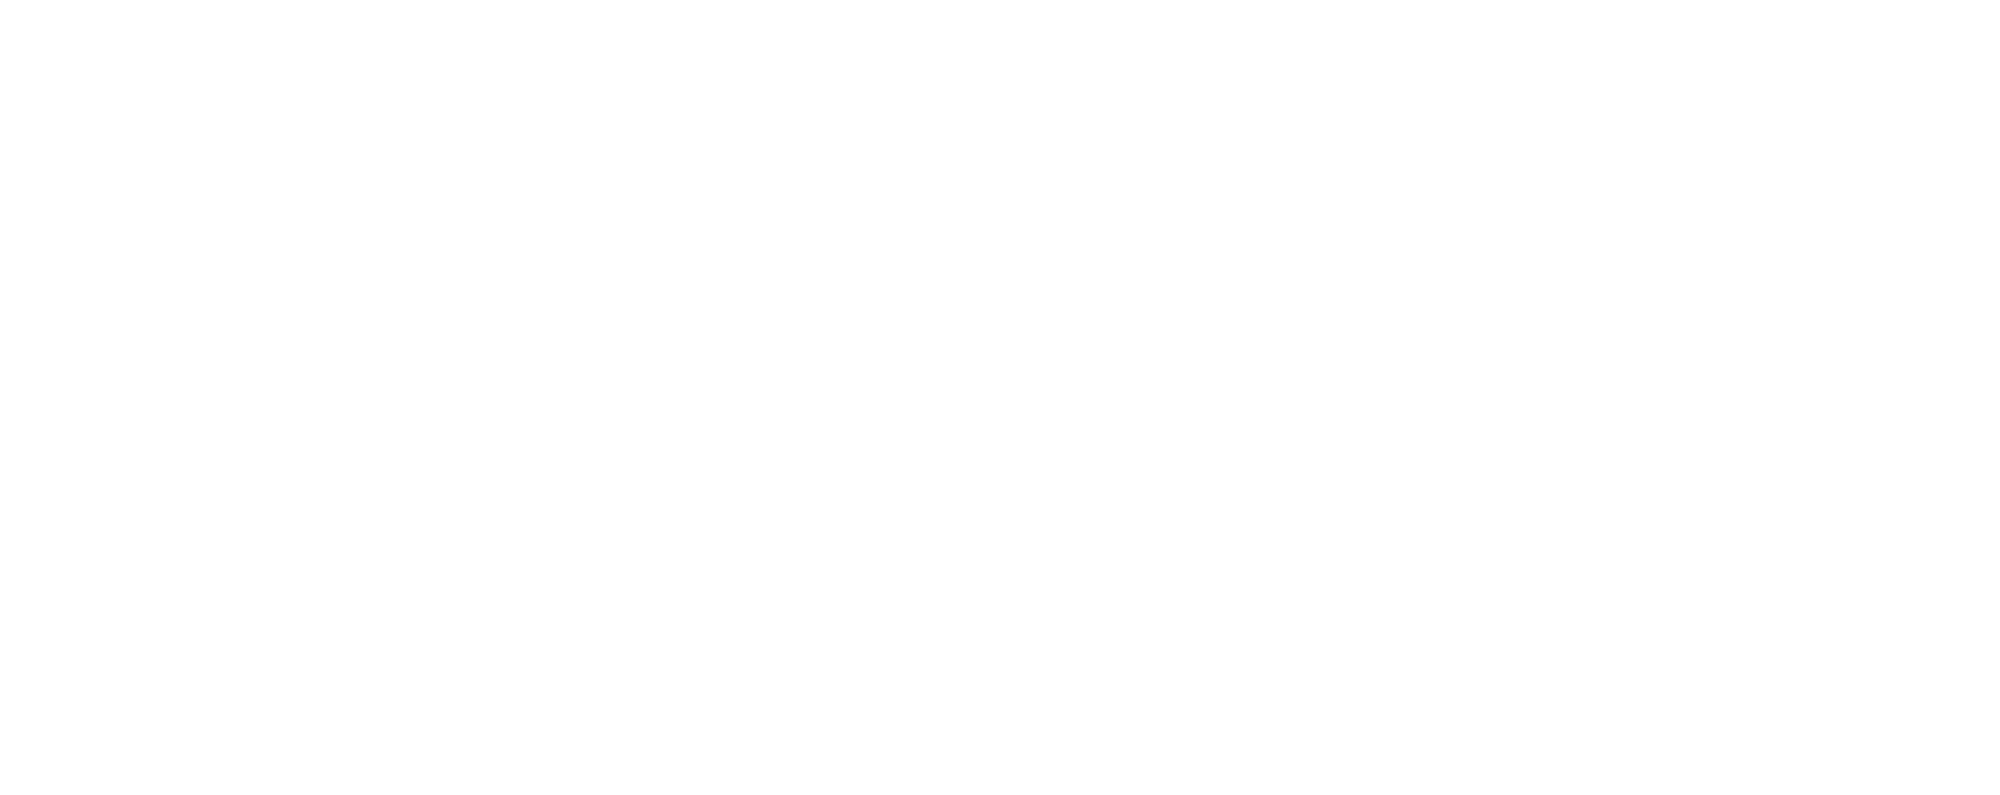 Birkett Entertainment